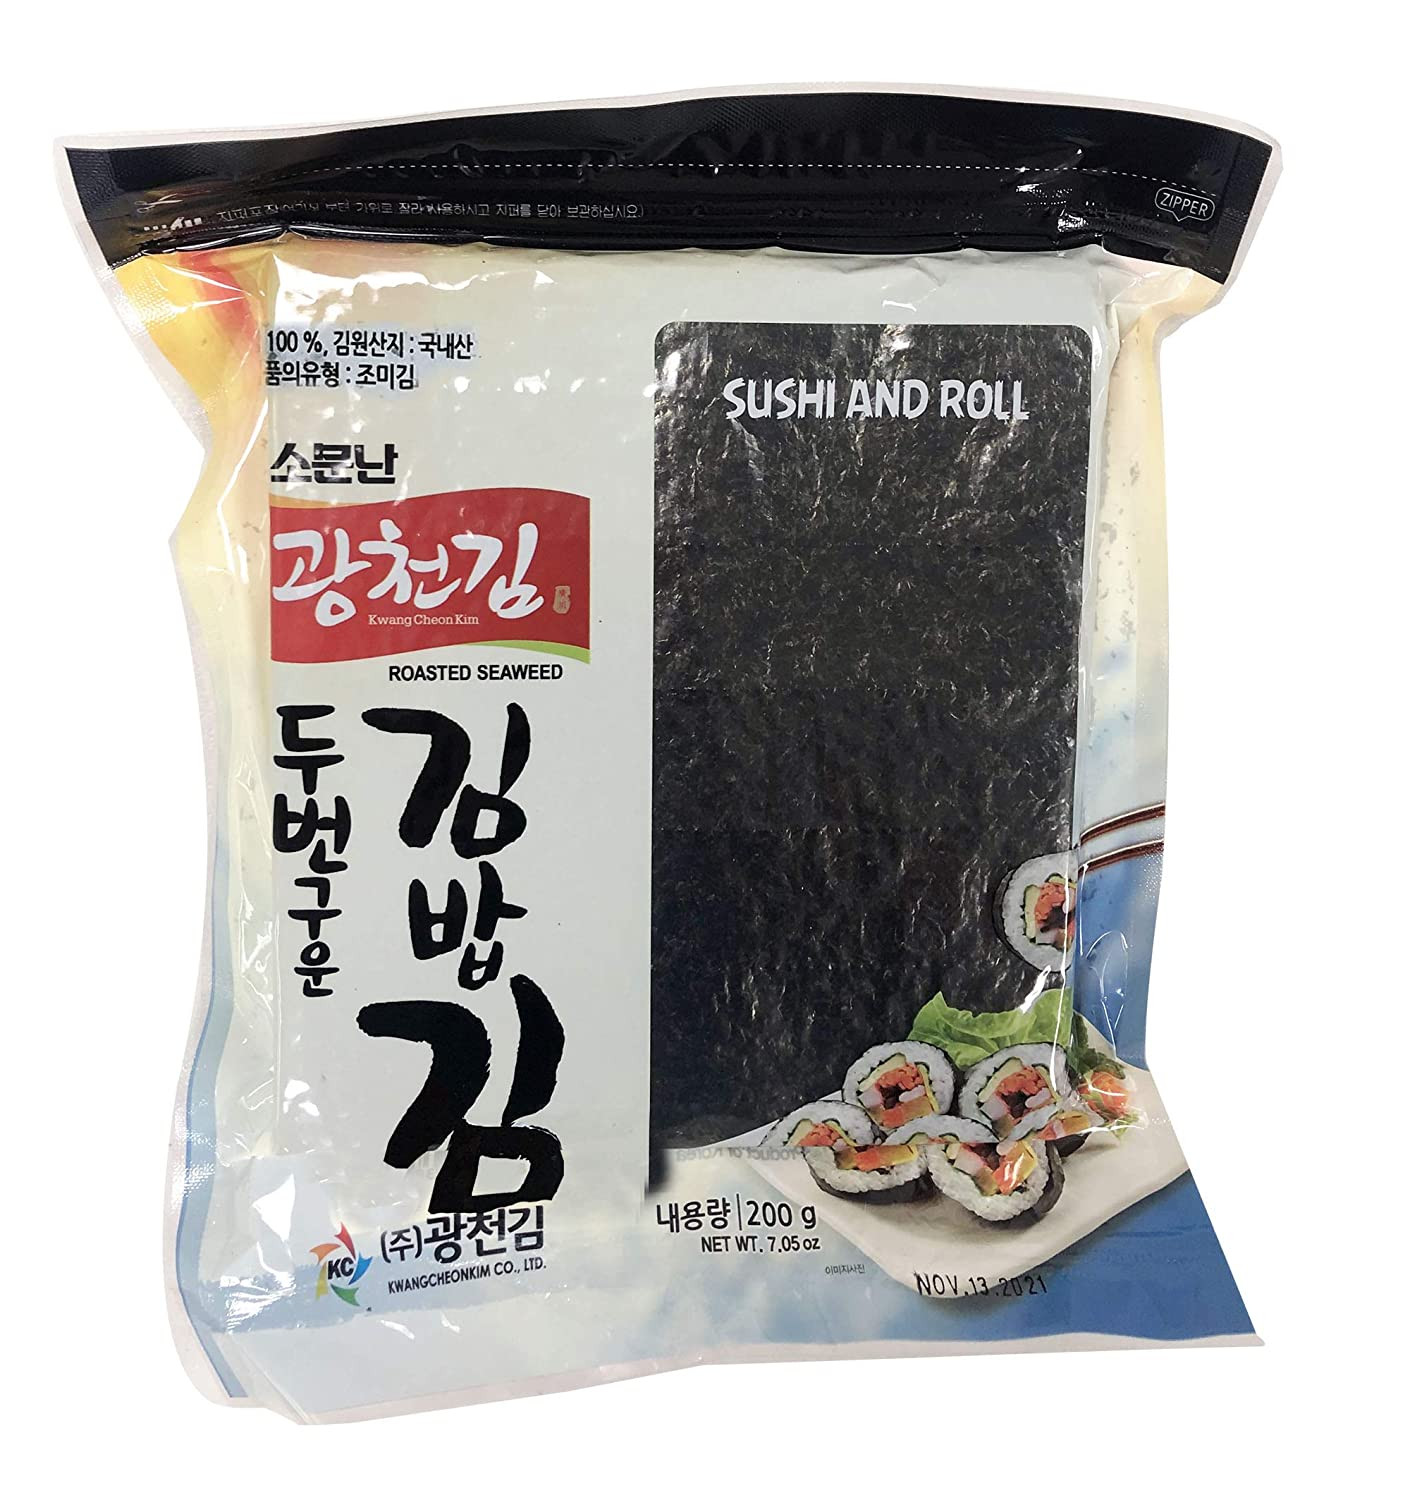 100 Full Size Sheets Resealable Bag Yaki Sushi Nori Roasted Seaweed Rolls N Wraps Laver 200 Gram - 7.05 Ounce - 100 Sheets, Resealable Bag / 7.05 oz / 김, のり, 海苔, 紫菜